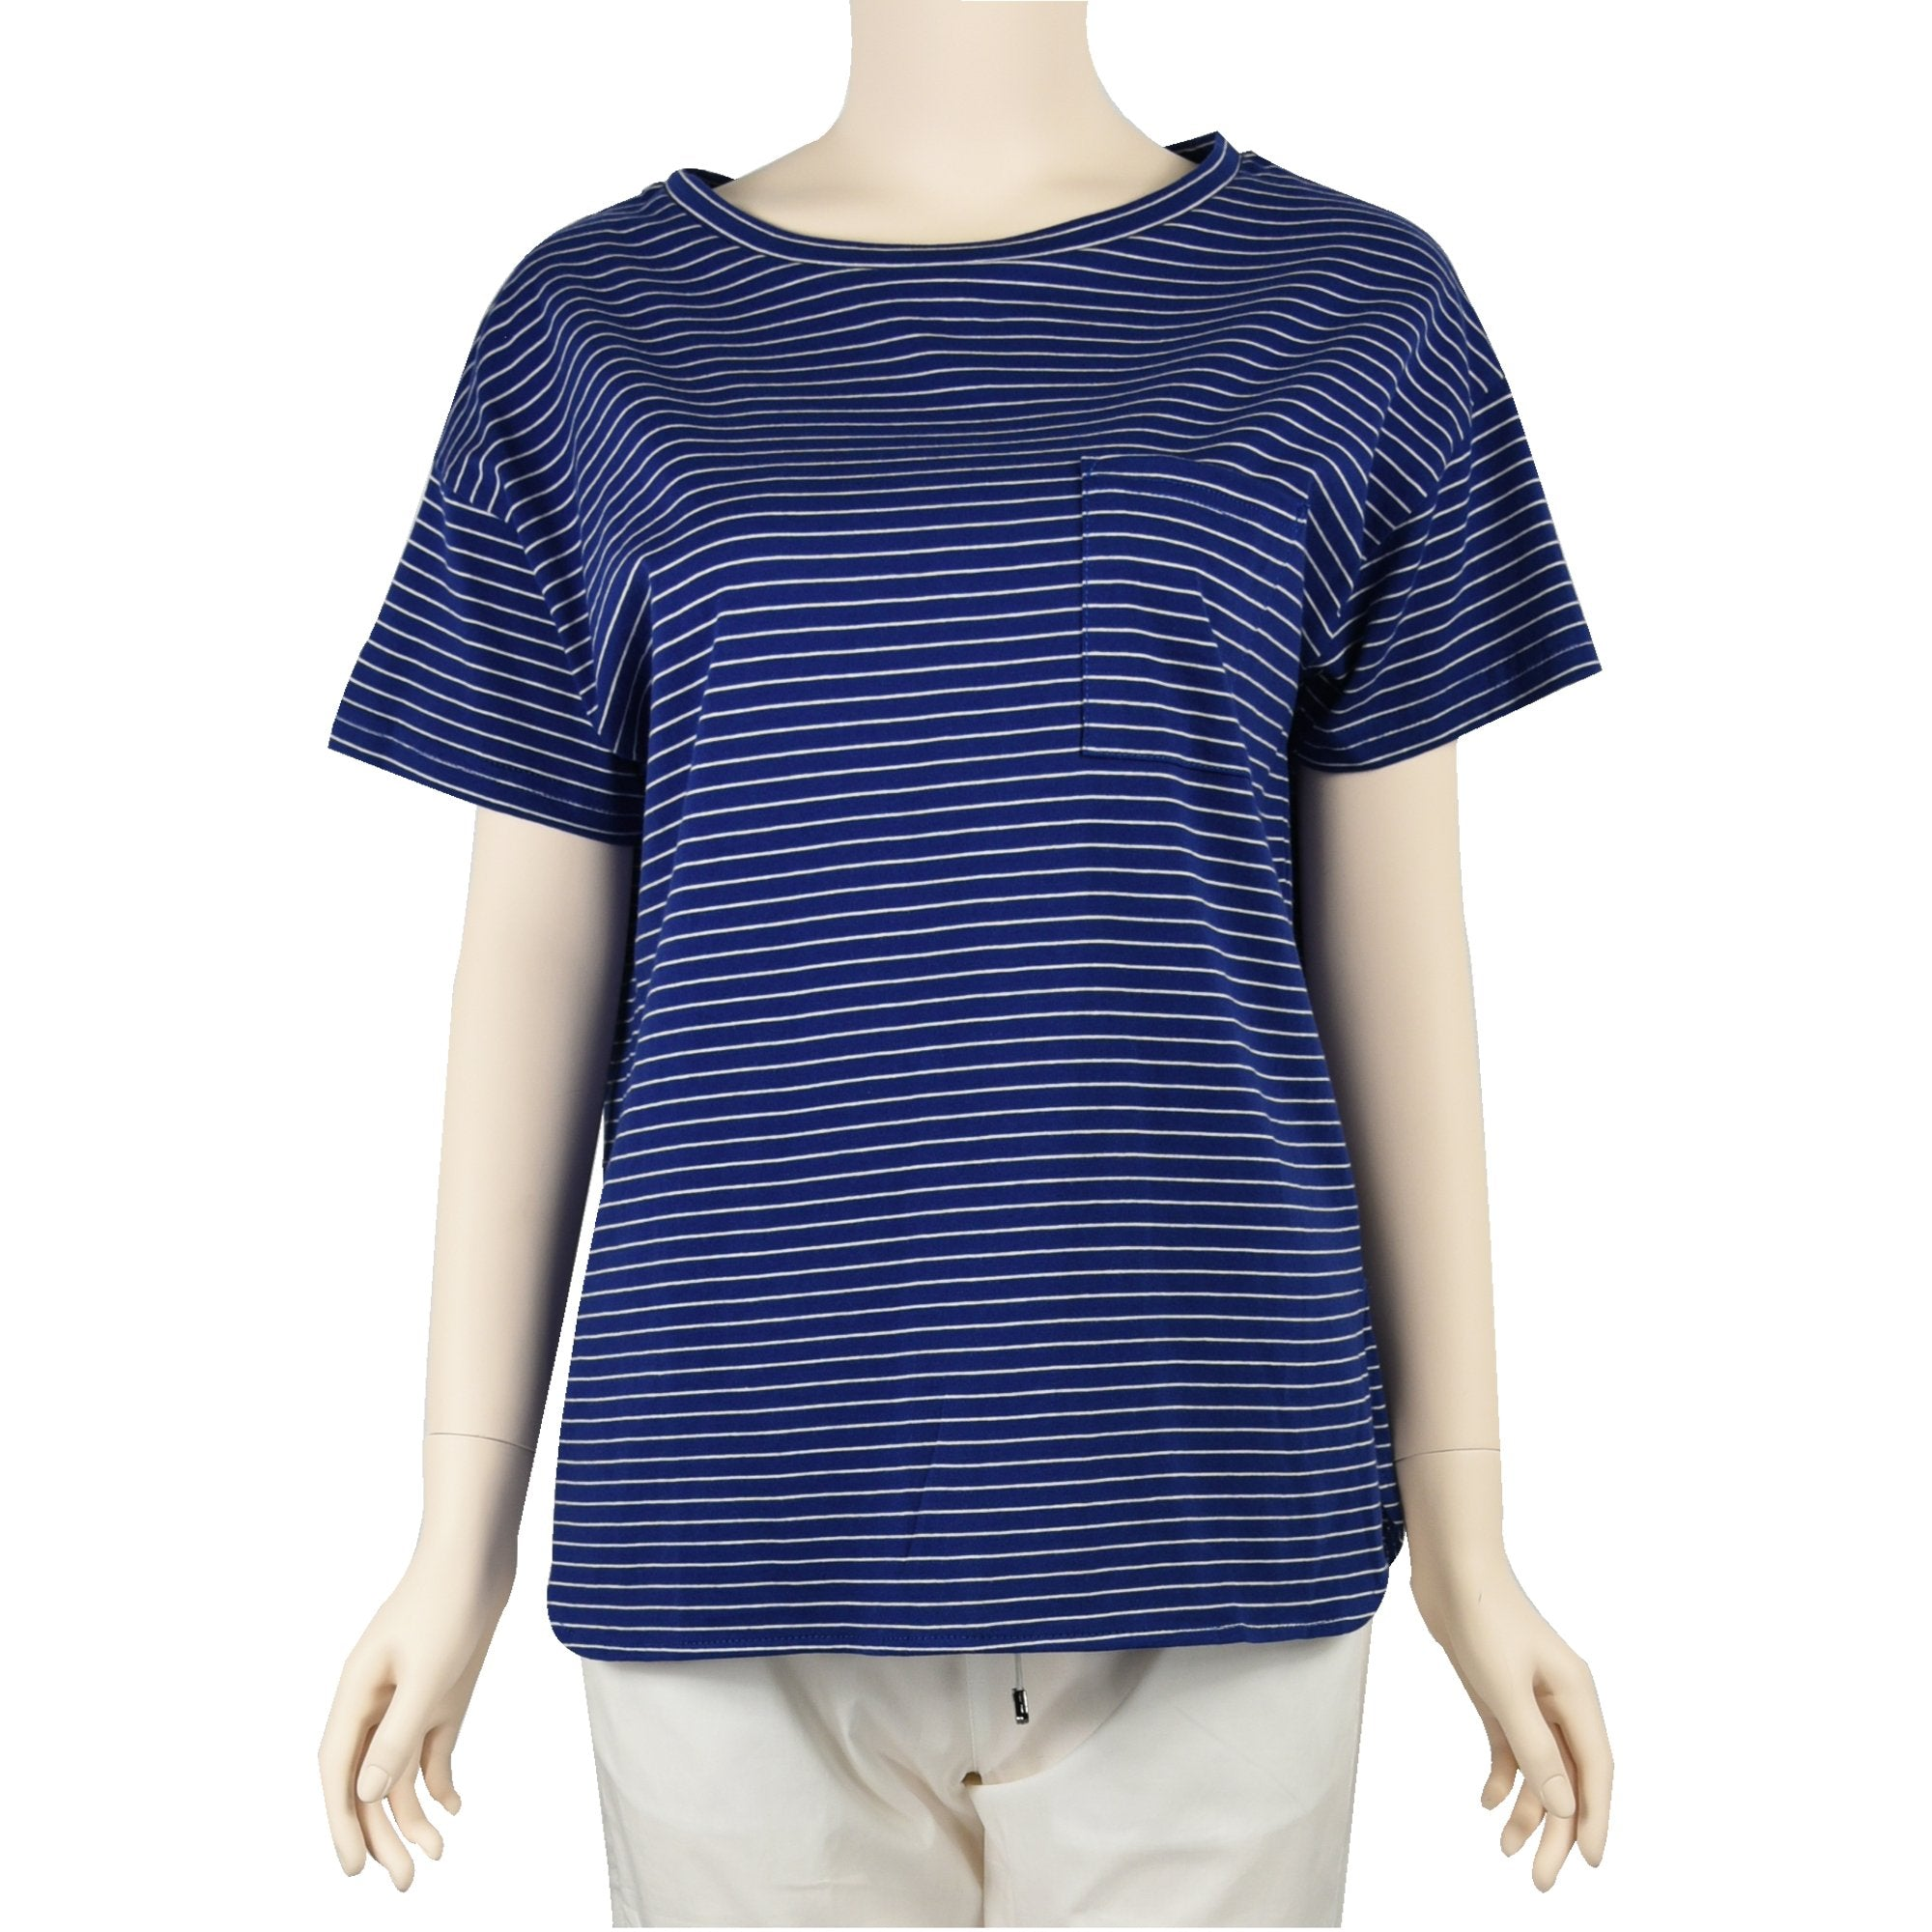 Patch Ladies Short Sleeve Cotton Rolled Cuff Striped T-shirt with Pockets-02-1996-Blue-Stripe